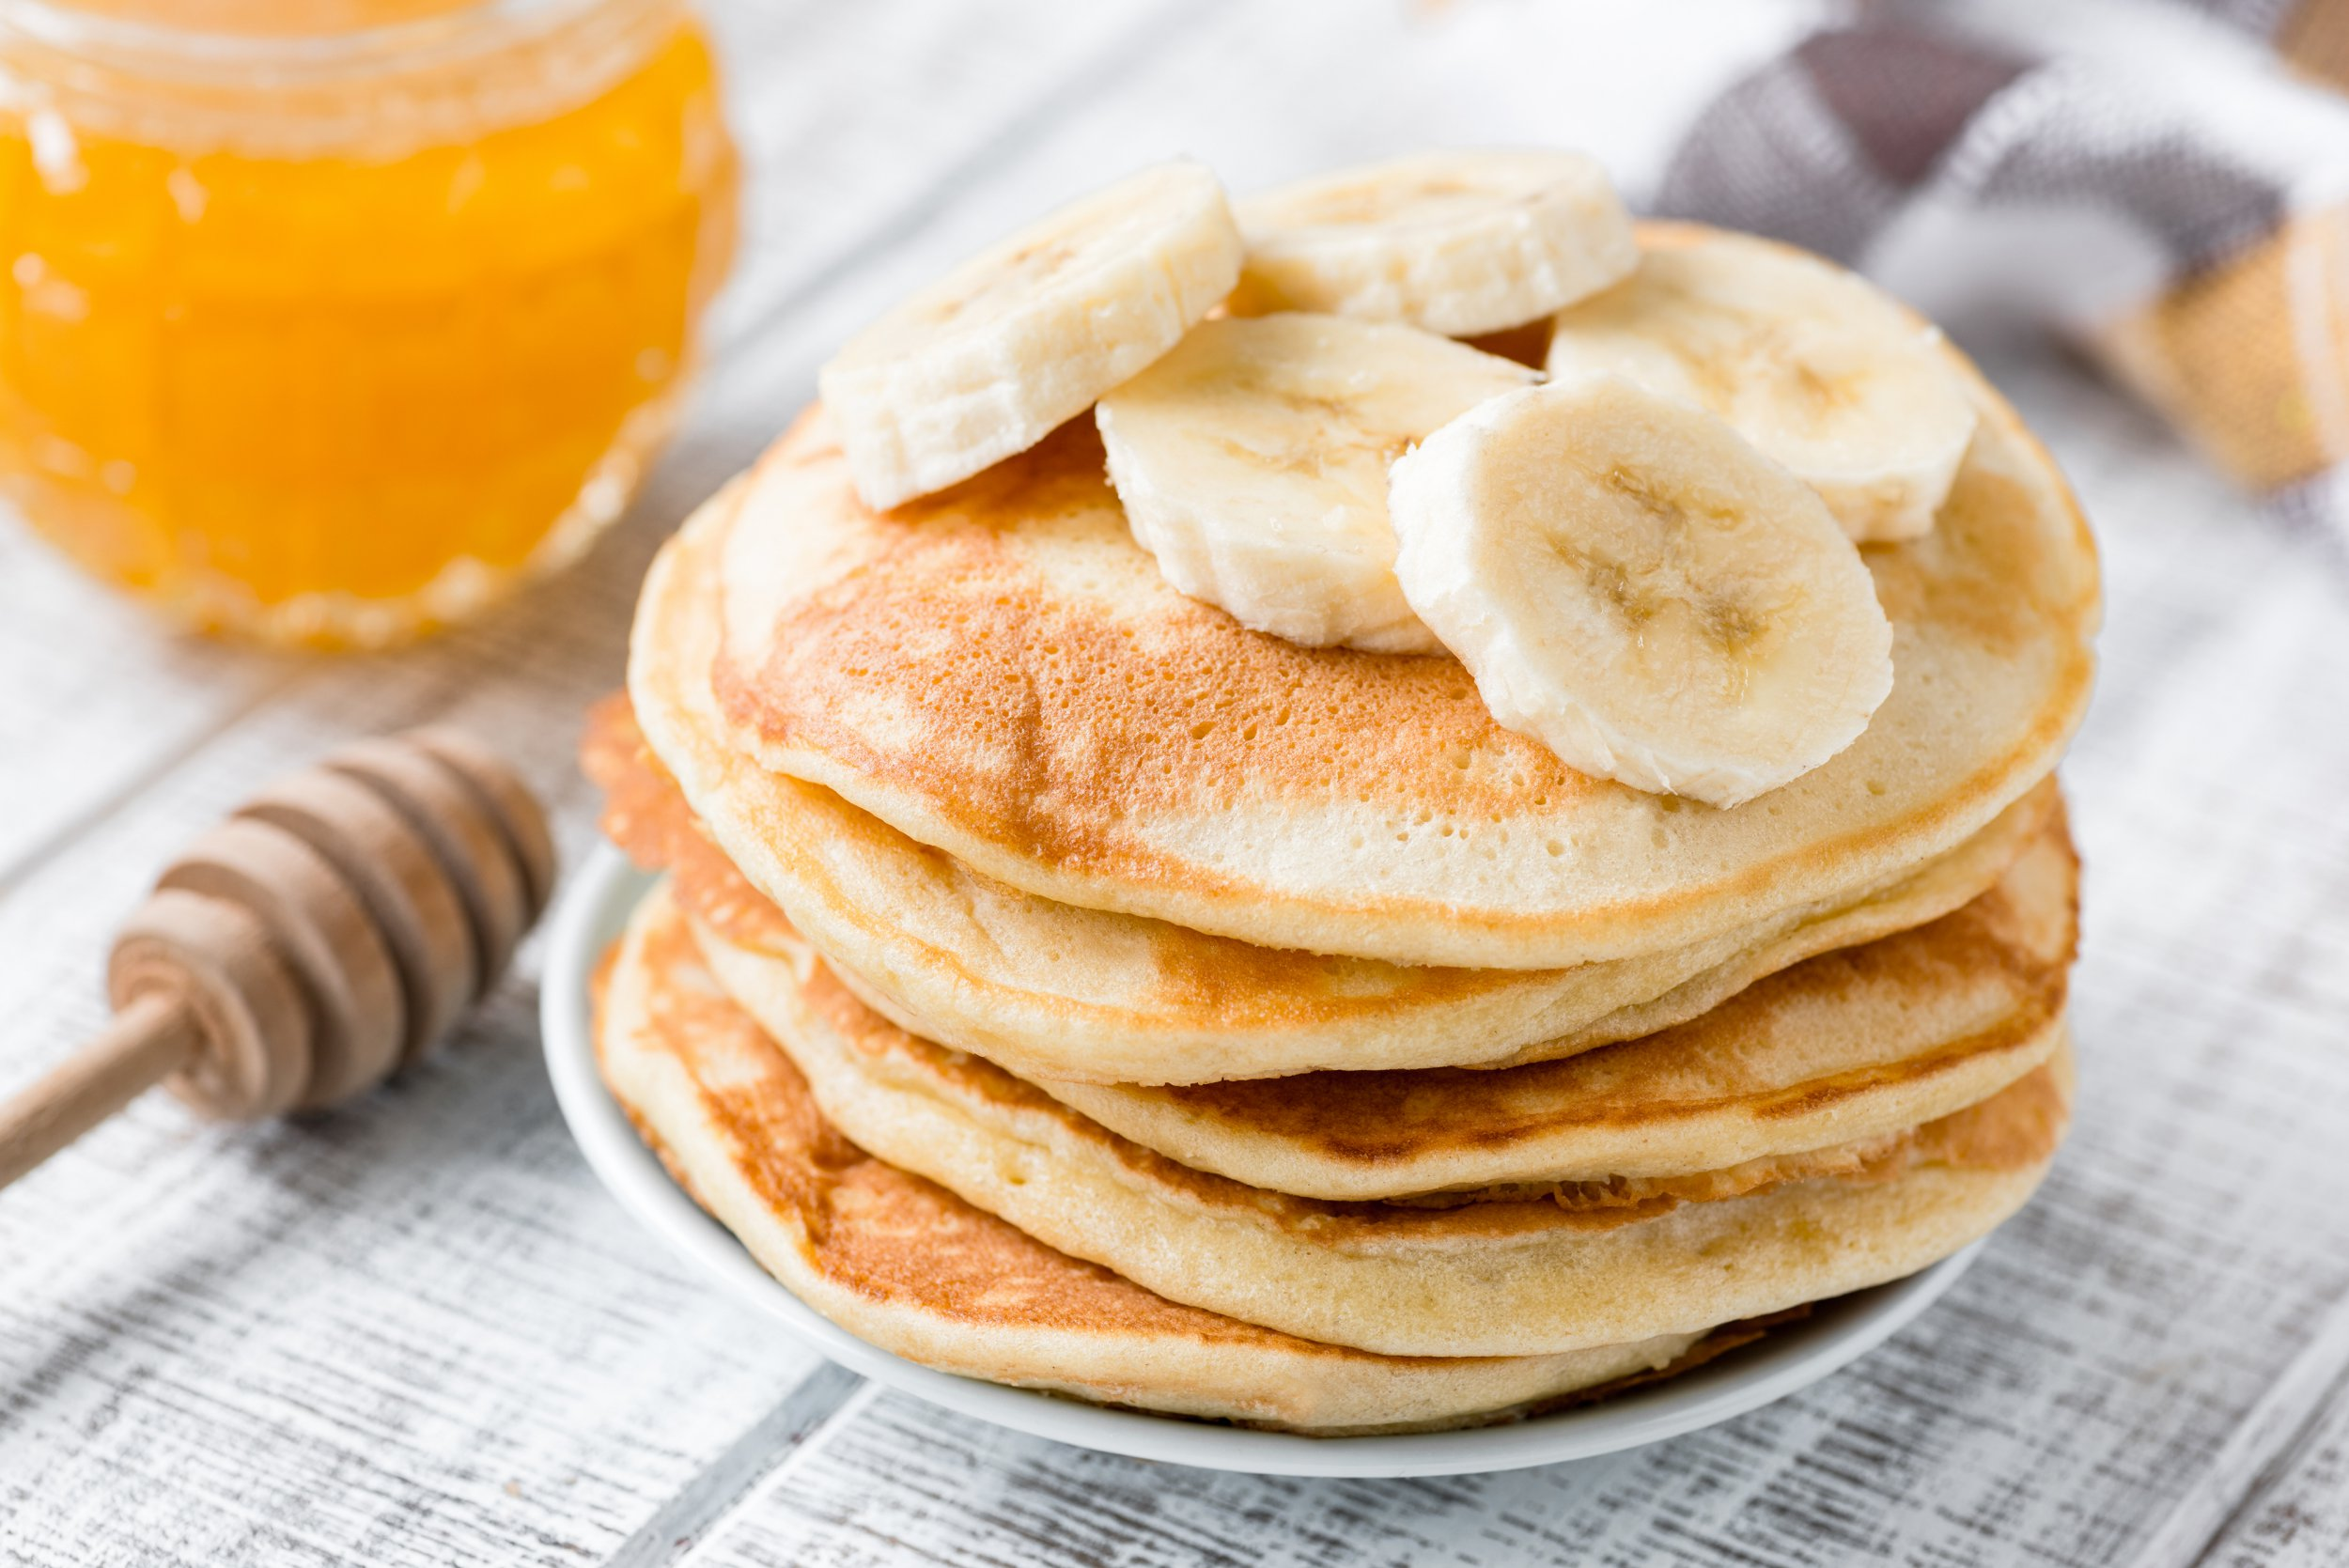 Is Fat Tuesday the same as Pancake Day and what do they both celebrate?